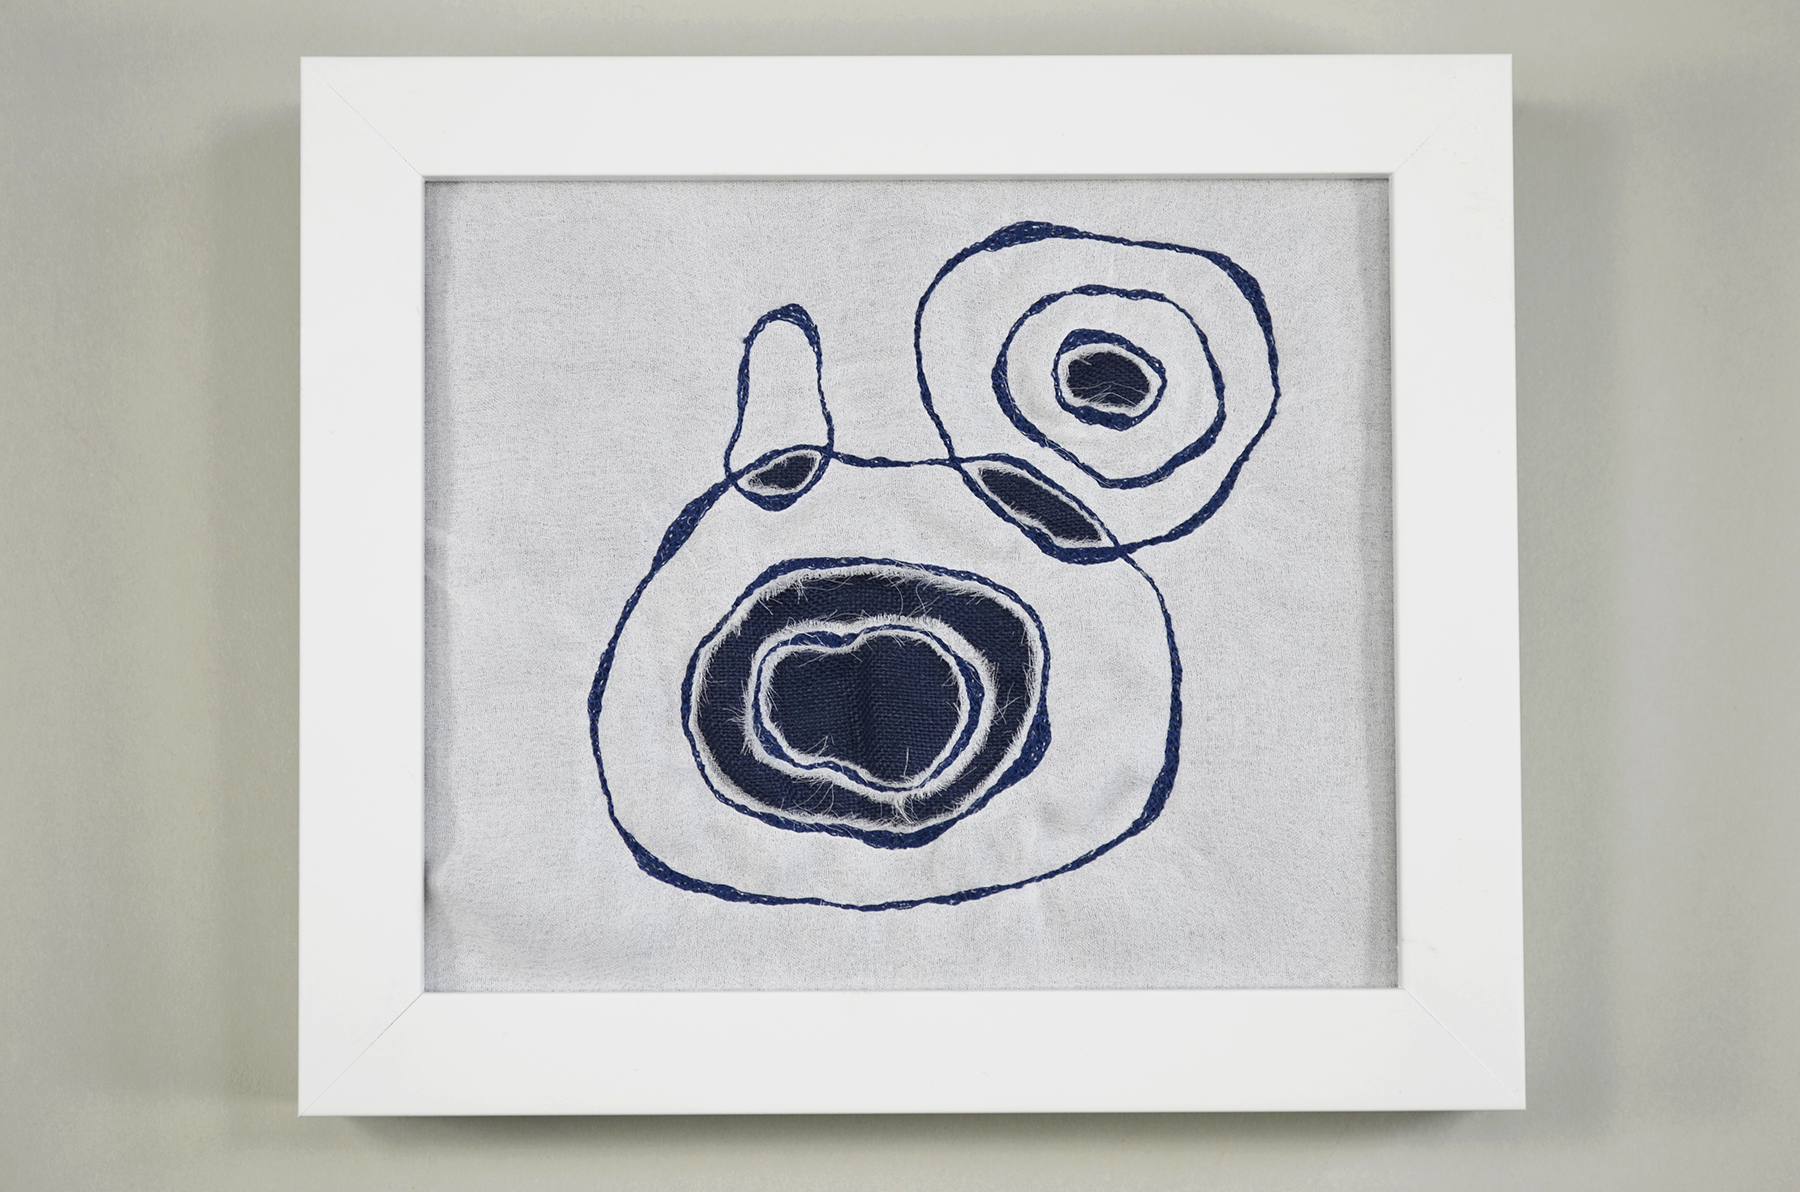 Embroidery Drawing #3